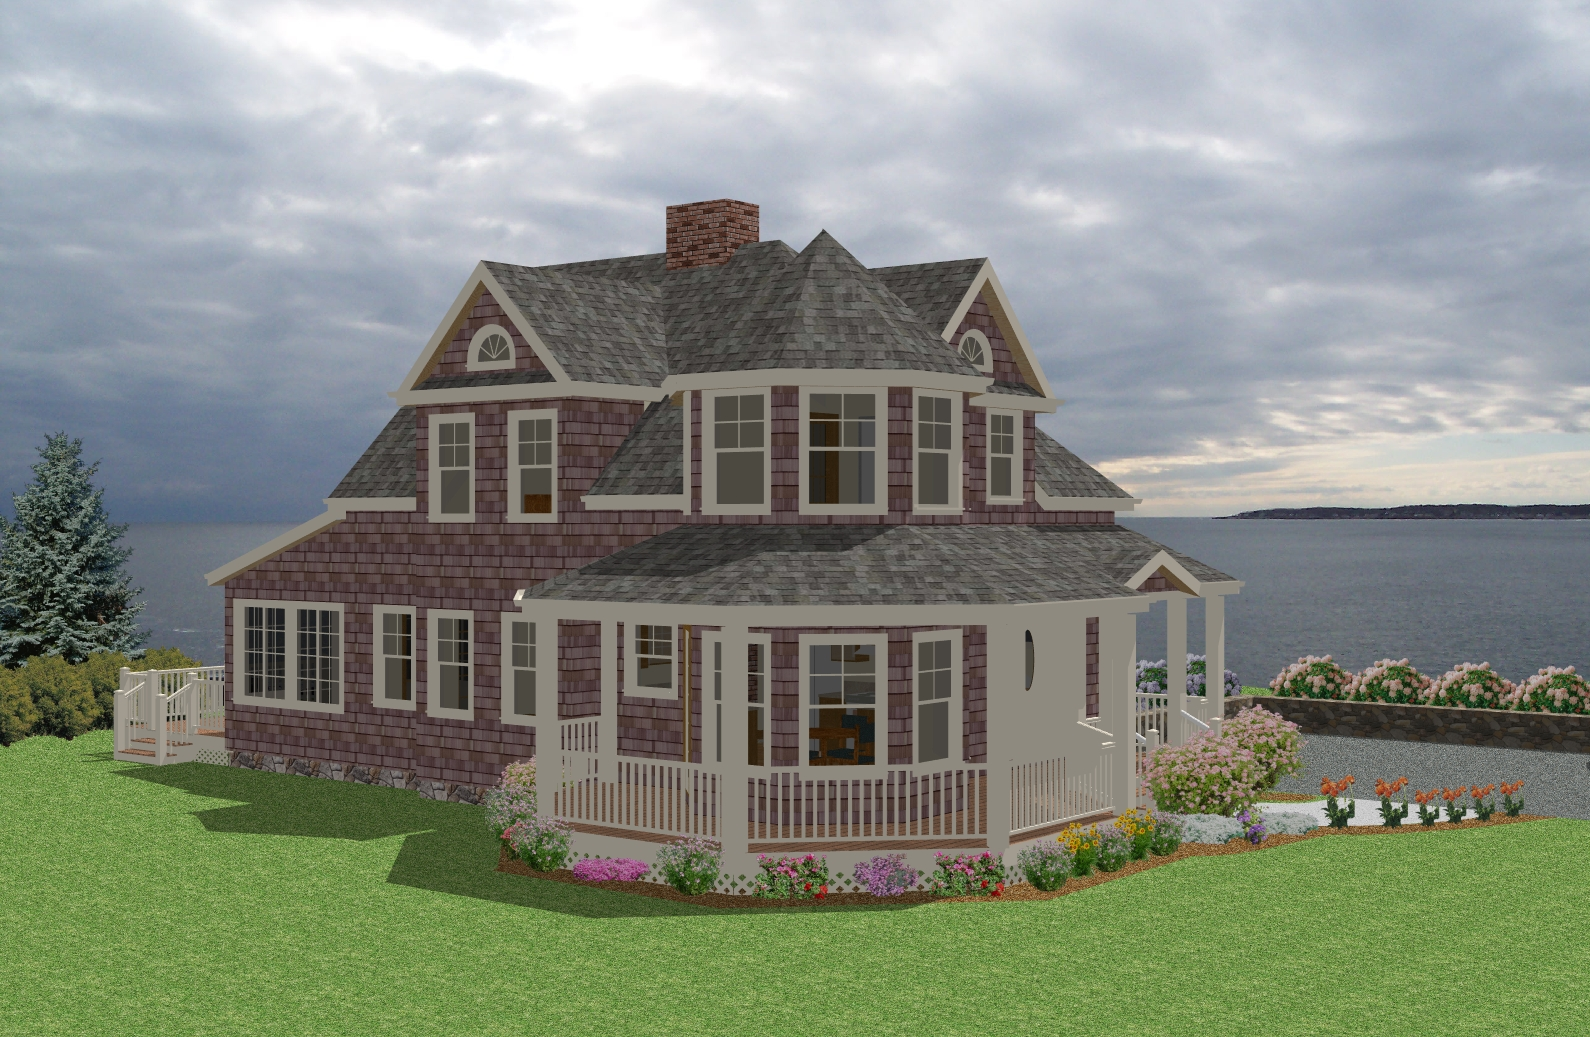 New england cottage house plans find house plans Cottage house plans